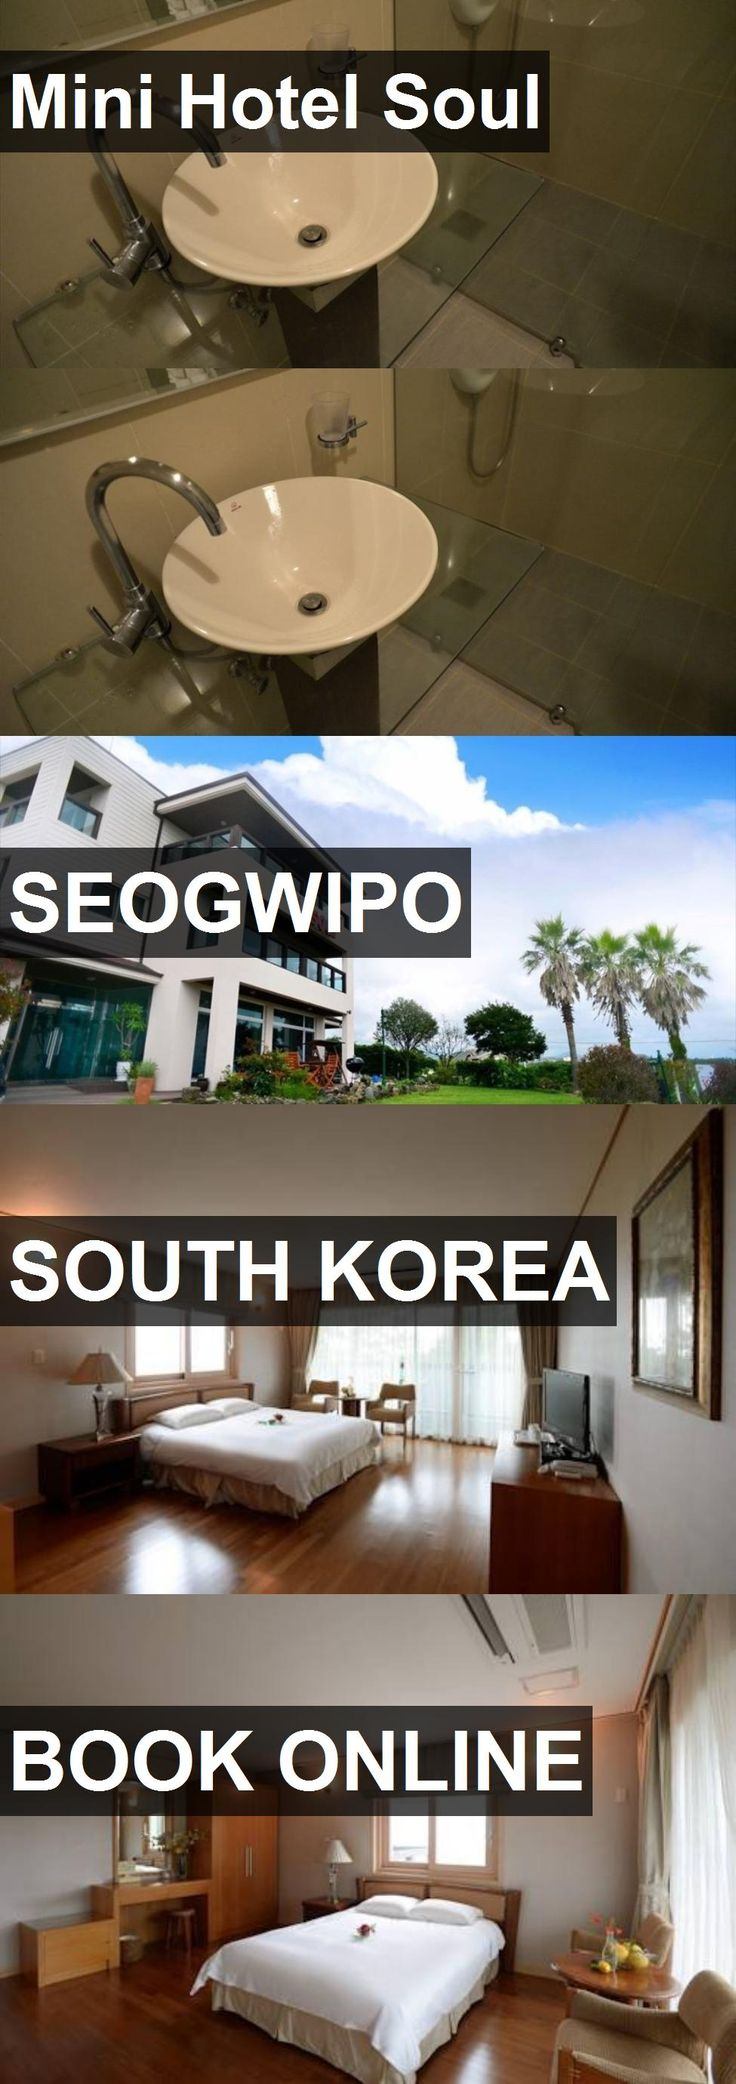 Mini Hotel Soul in Seogwipo, South Korea. For more information, photos, reviews and best prices please follow the link. #SouthKorea #Seogwipo #travel #vacation #hotel